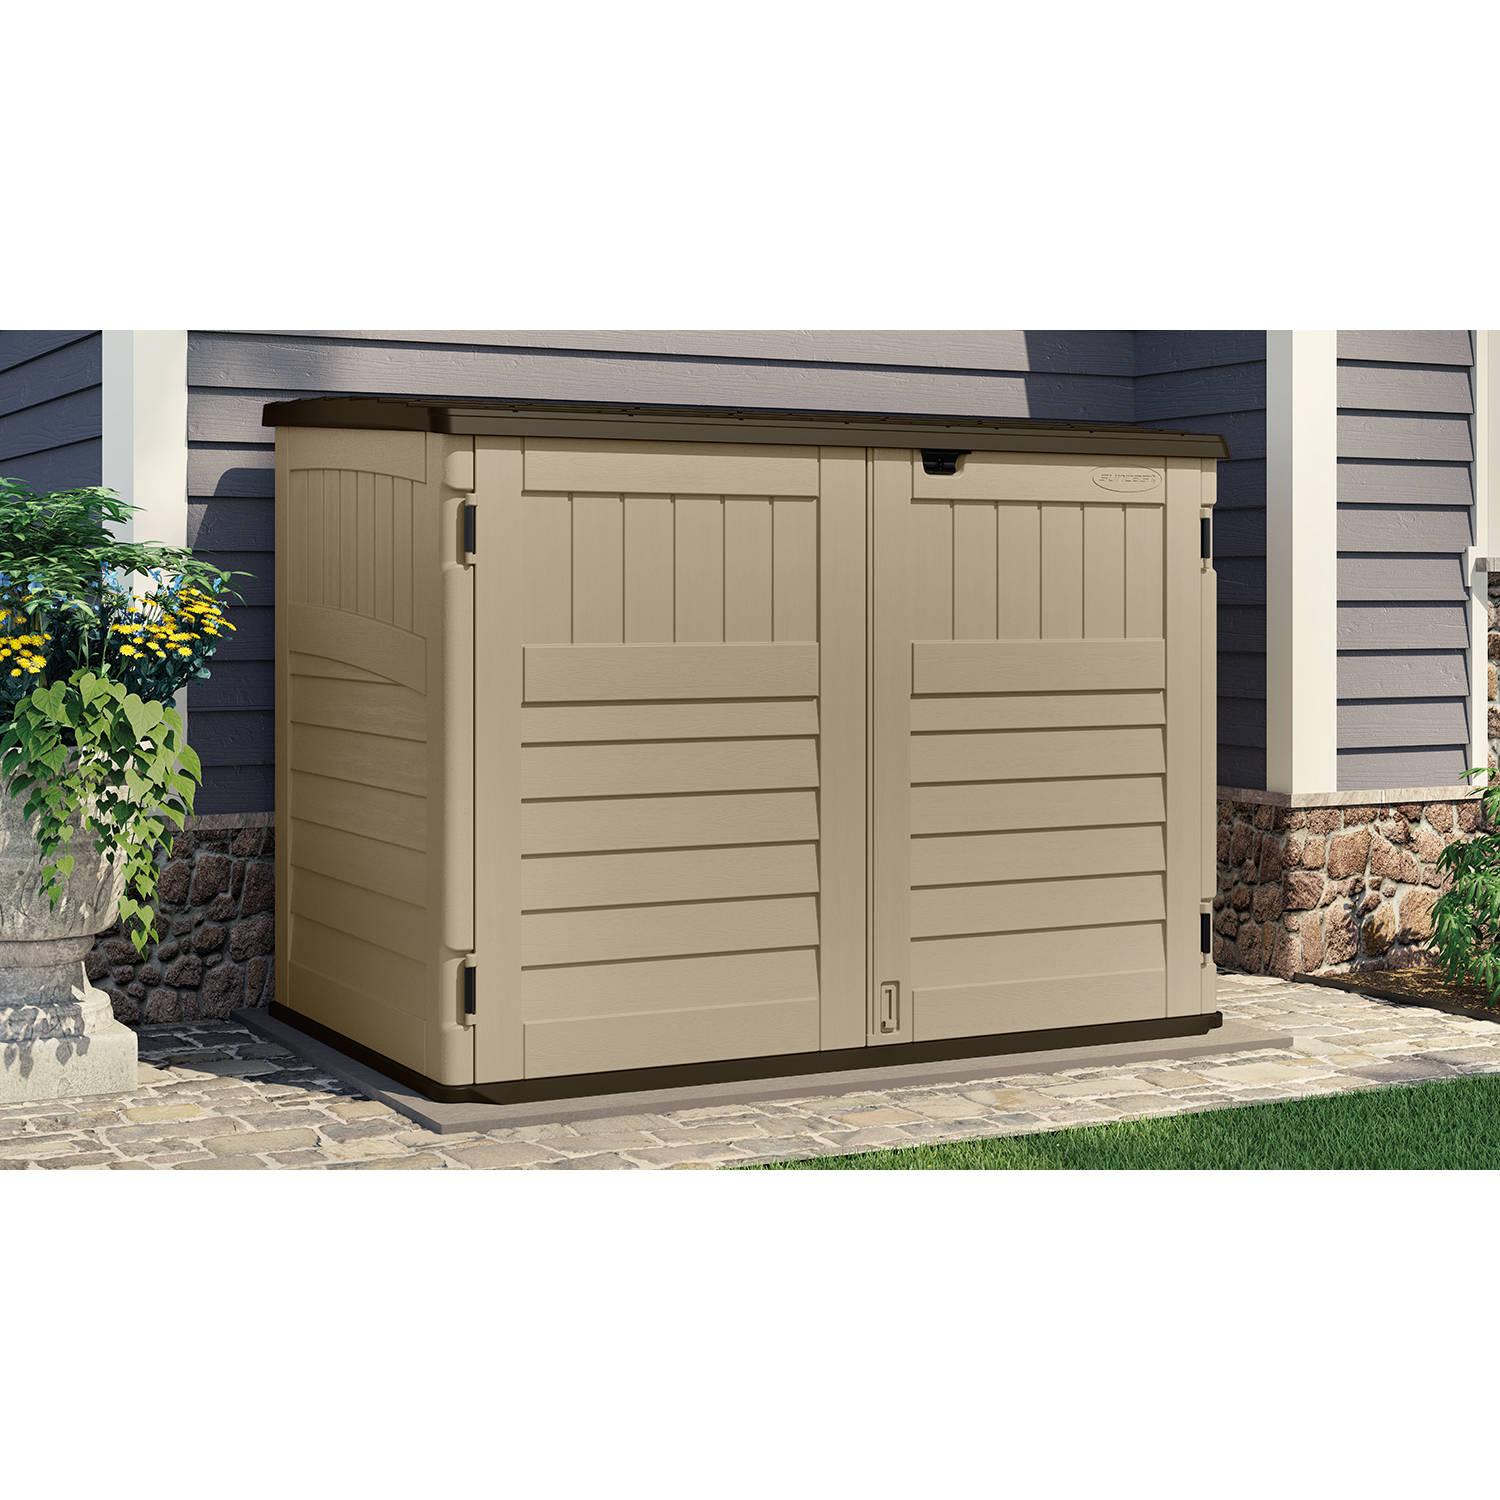 Garage Cabi s Home Depot Base together with 1068423 furthermore Pdf Diy Images Of Leanto Sheds Download Plans To Build A Wood Boiler moreover Small Entryway Table With Storage further Deck Boxes Patio Storage. on rubbermaid products storage shed